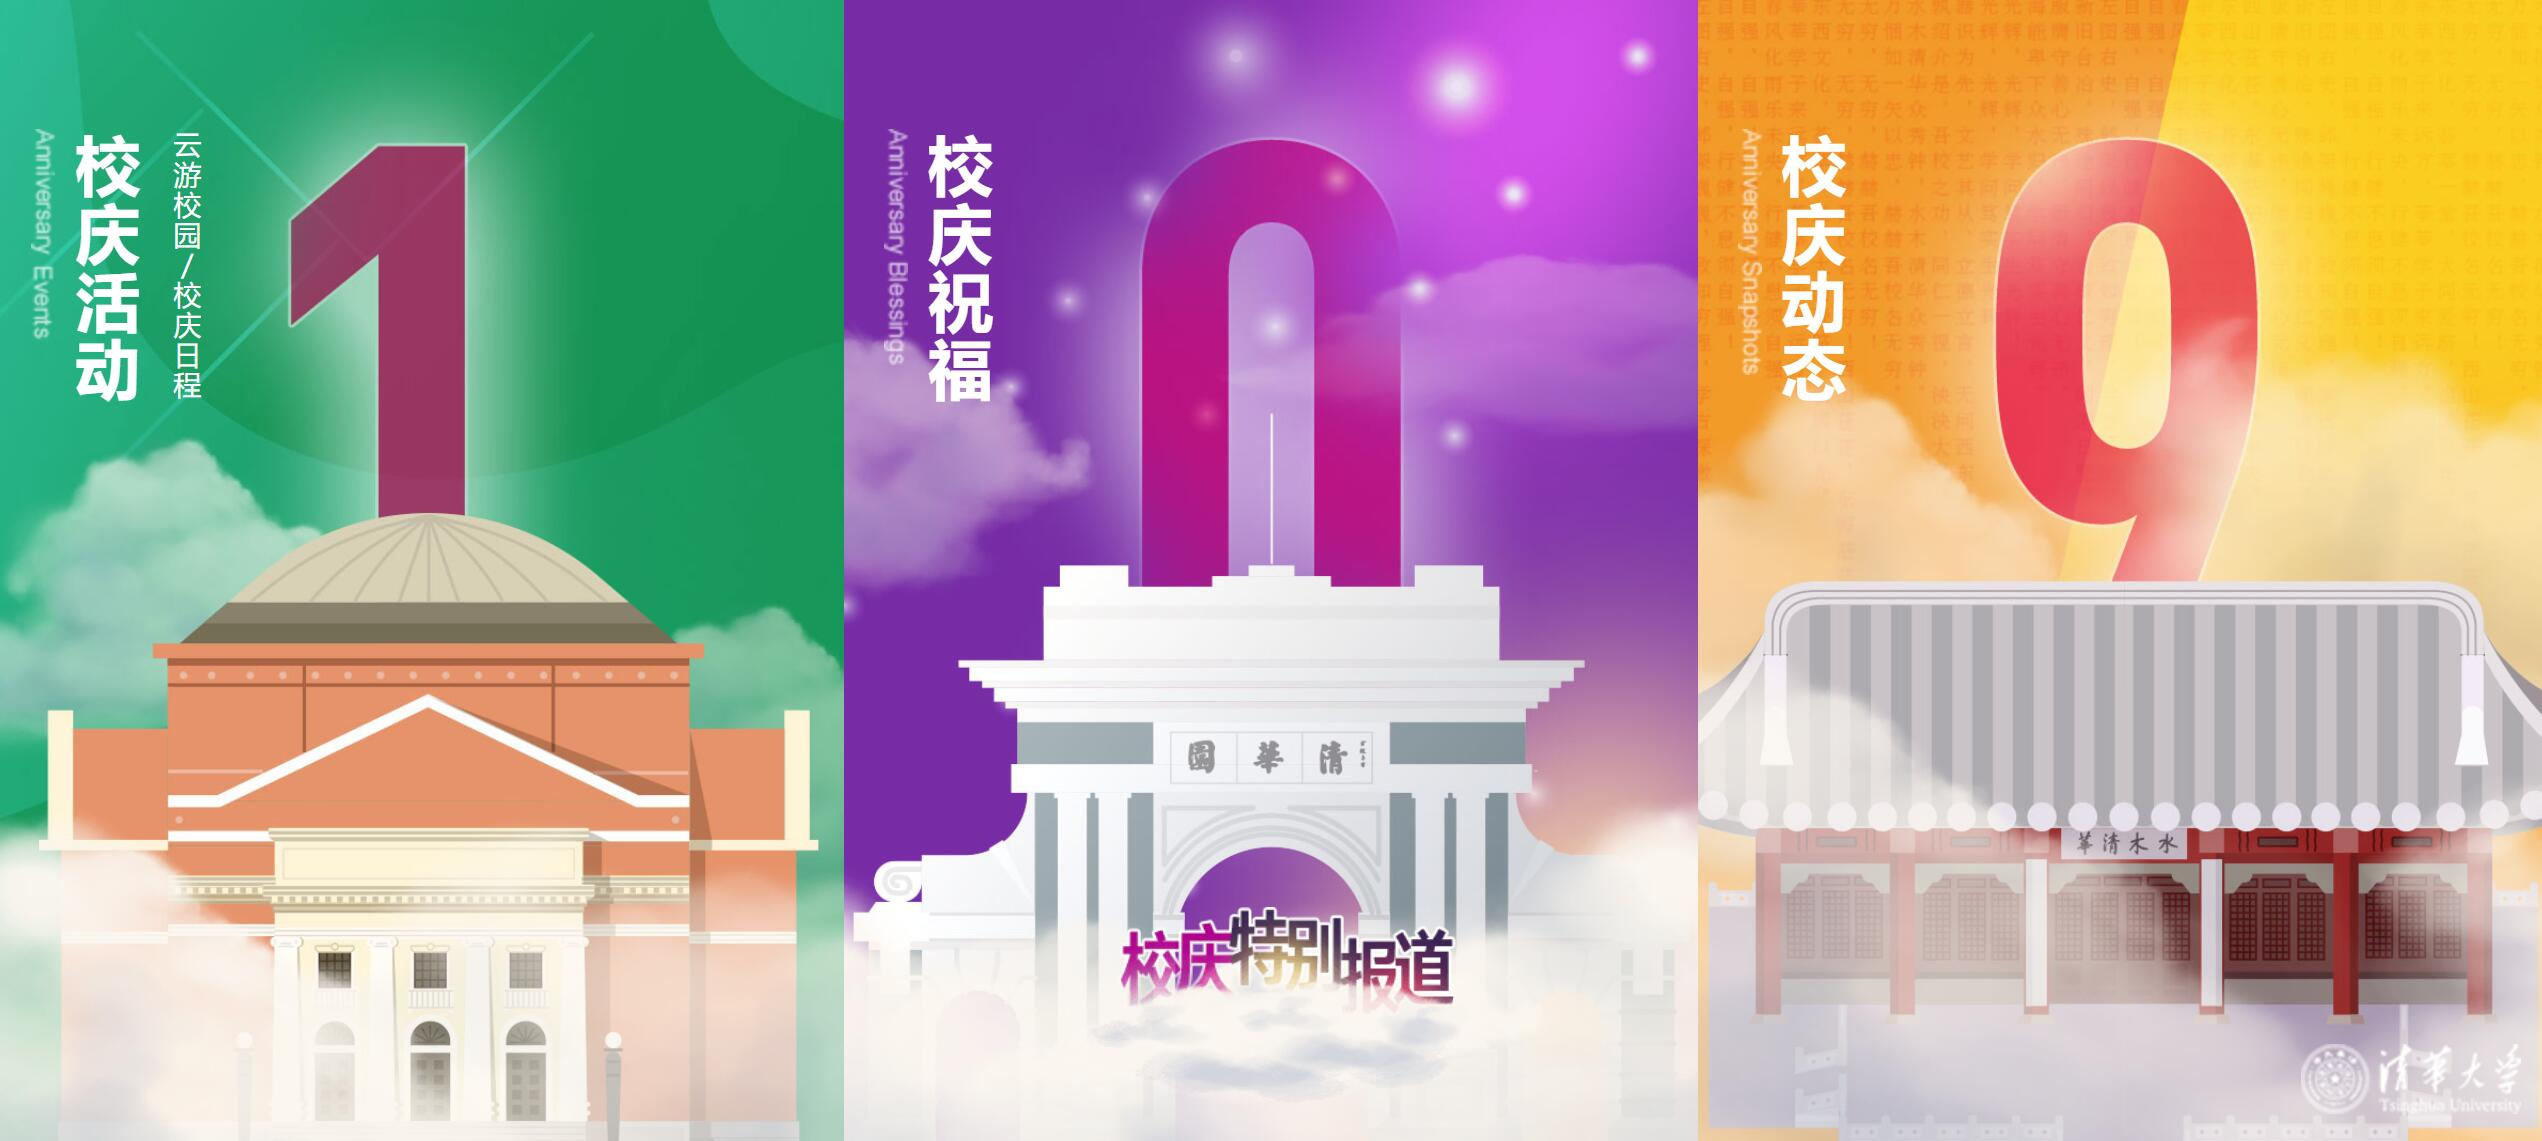 36th Anniversary of Tsinghua SEM, 109th Anniversary Tsinghua University 25 April